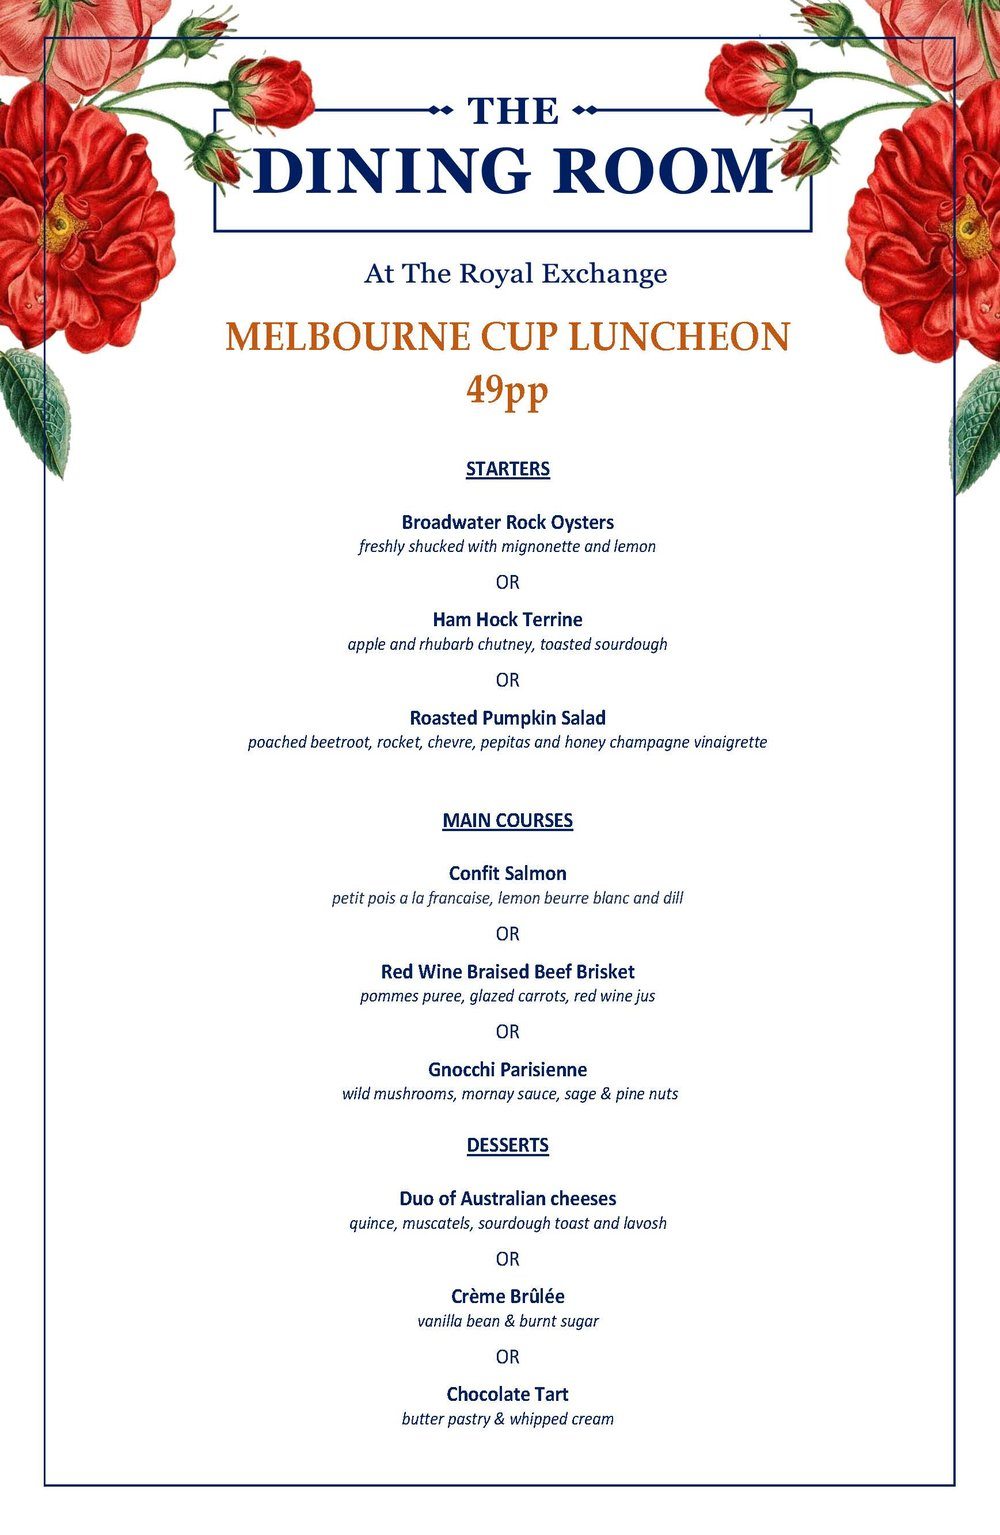 Melbourne Cup_2018.jpg